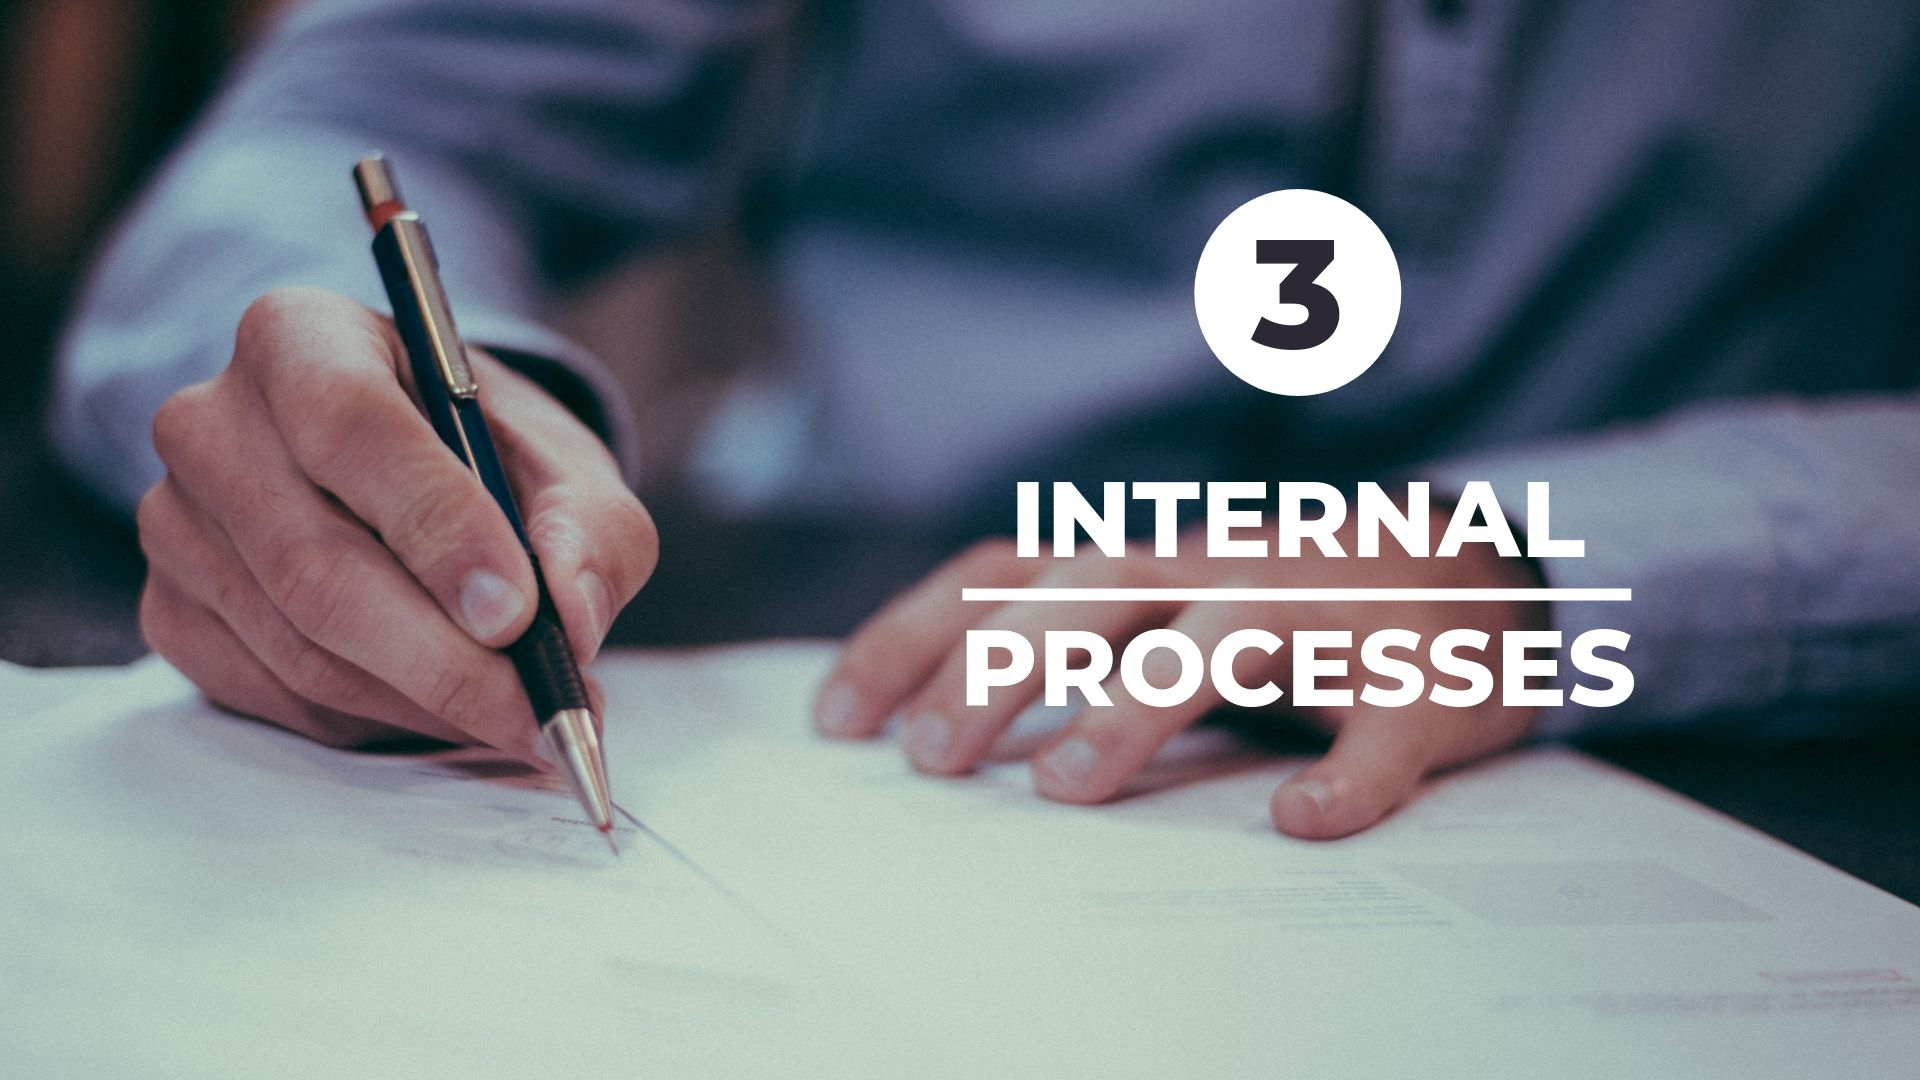 internal processes with man writing something on paper in background